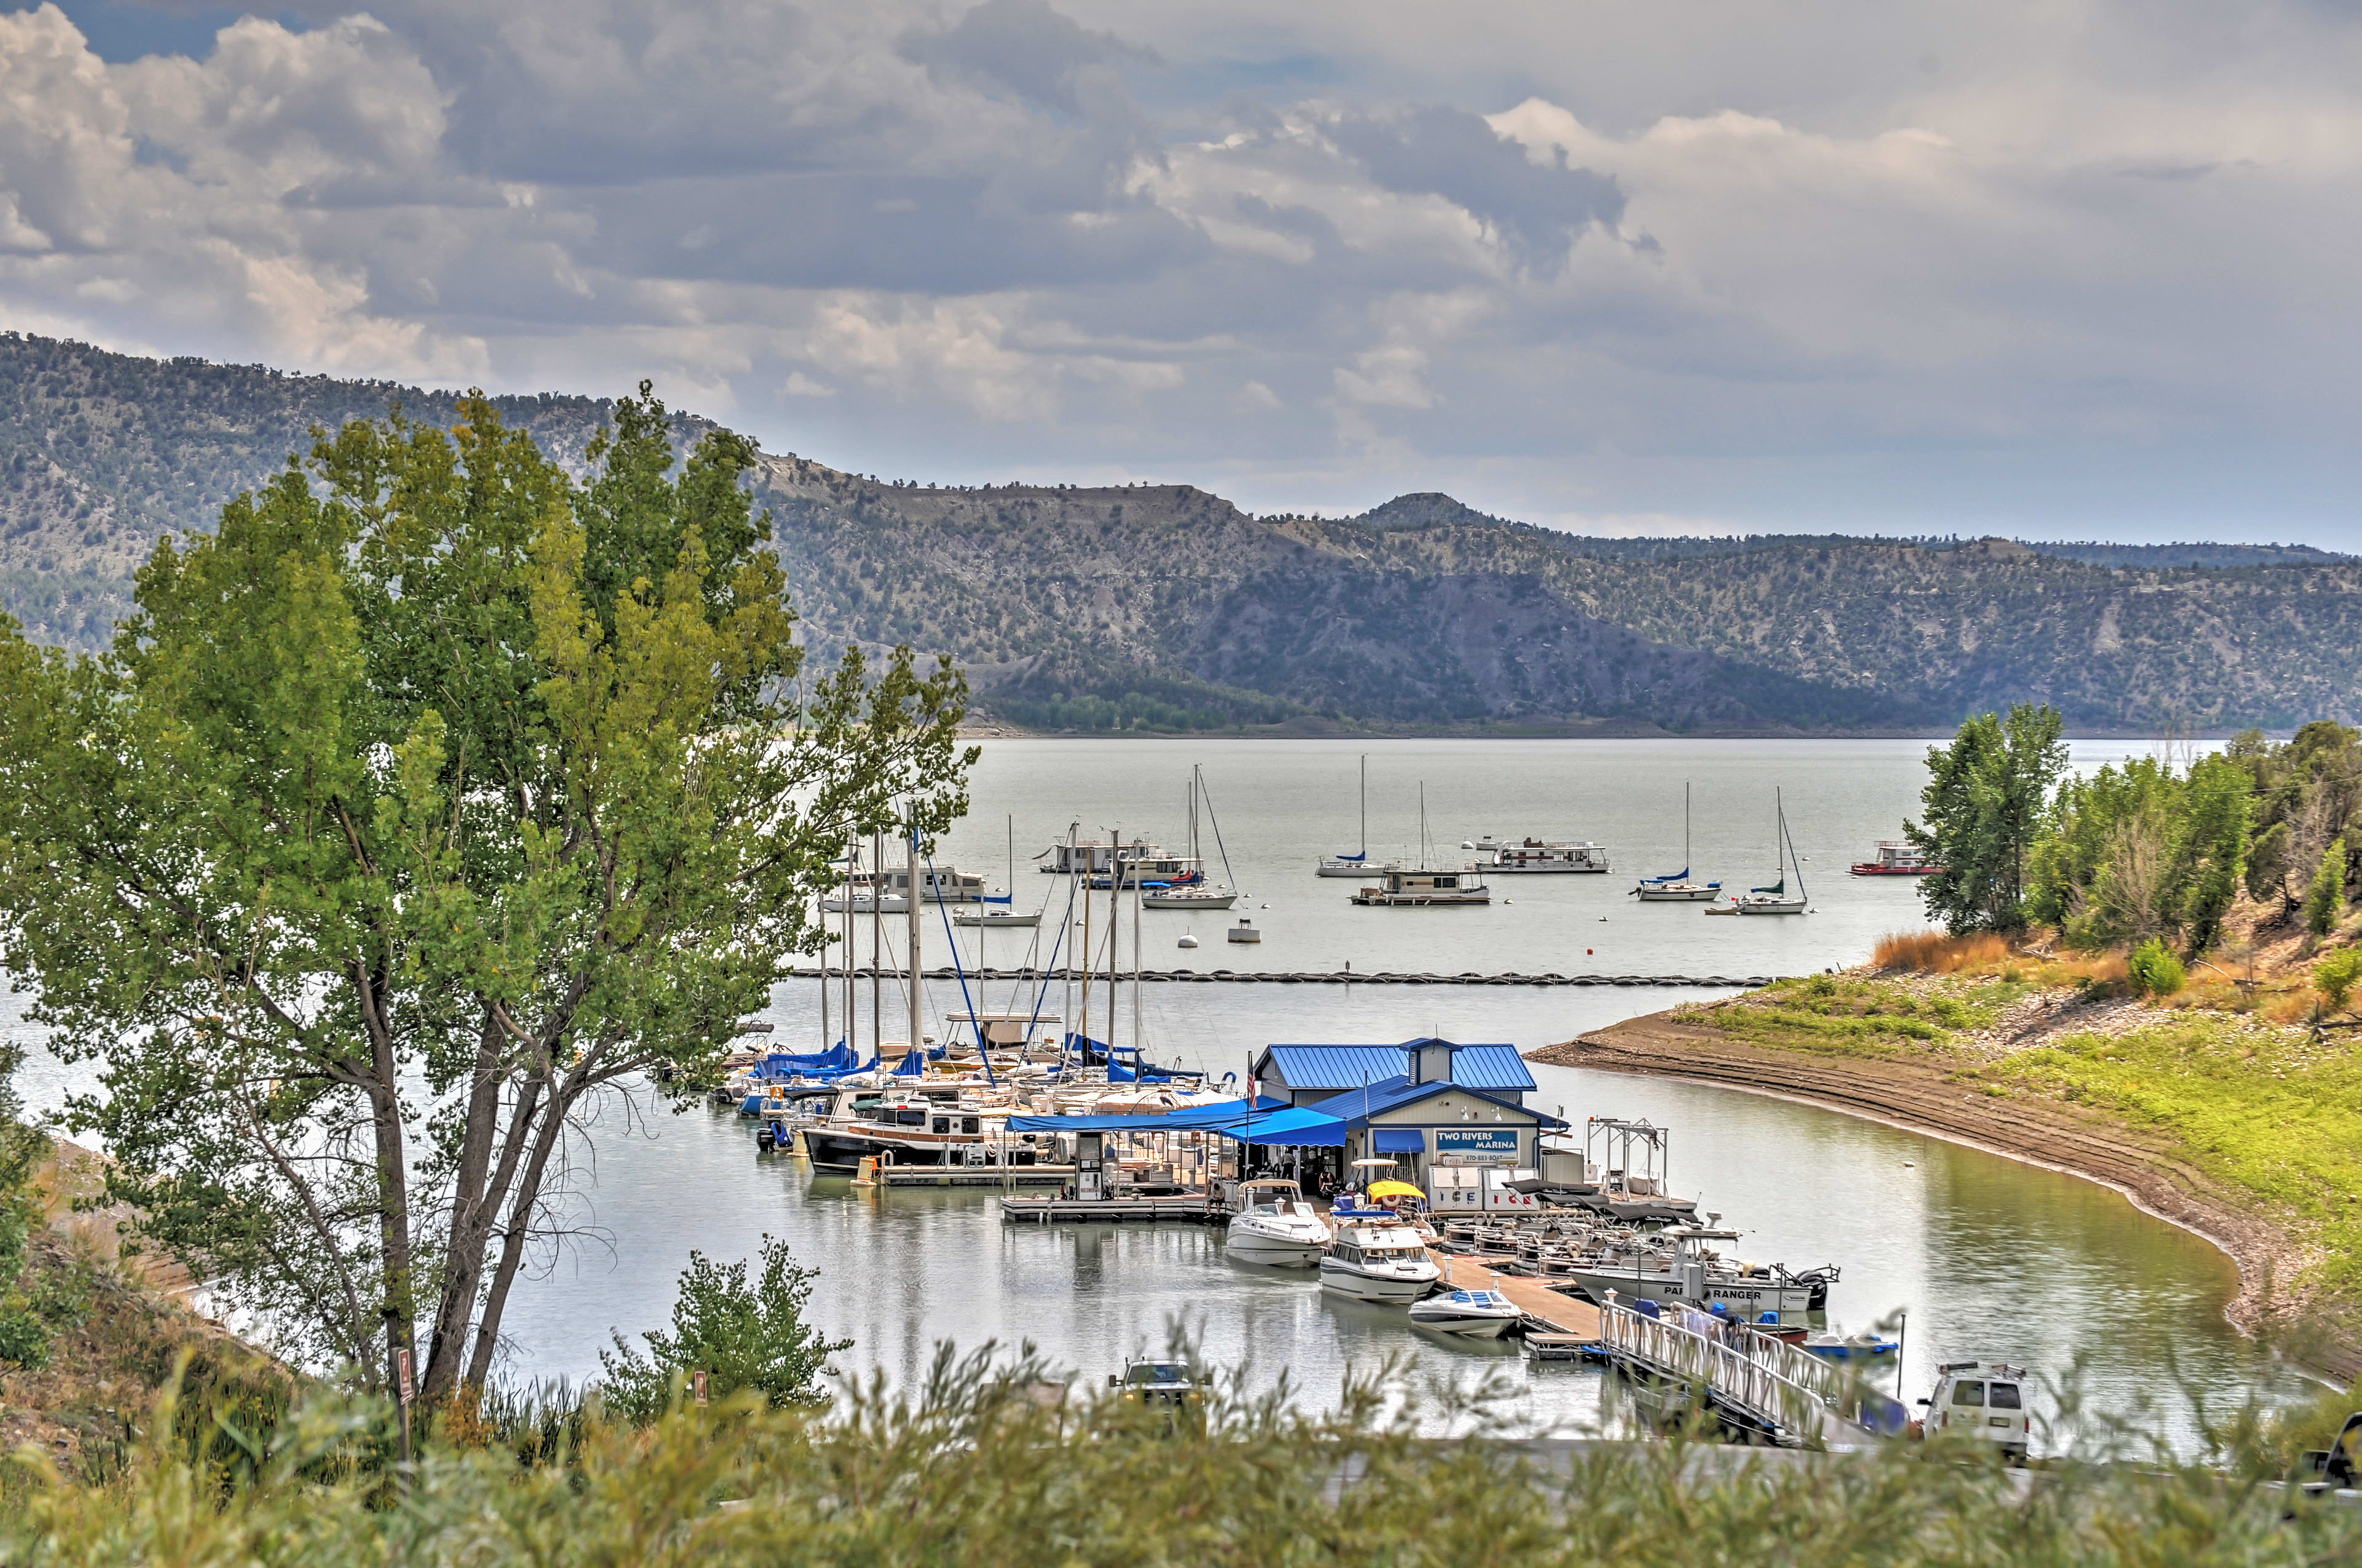 Treat yourself to a secluded getaway in Pagosa Springs!